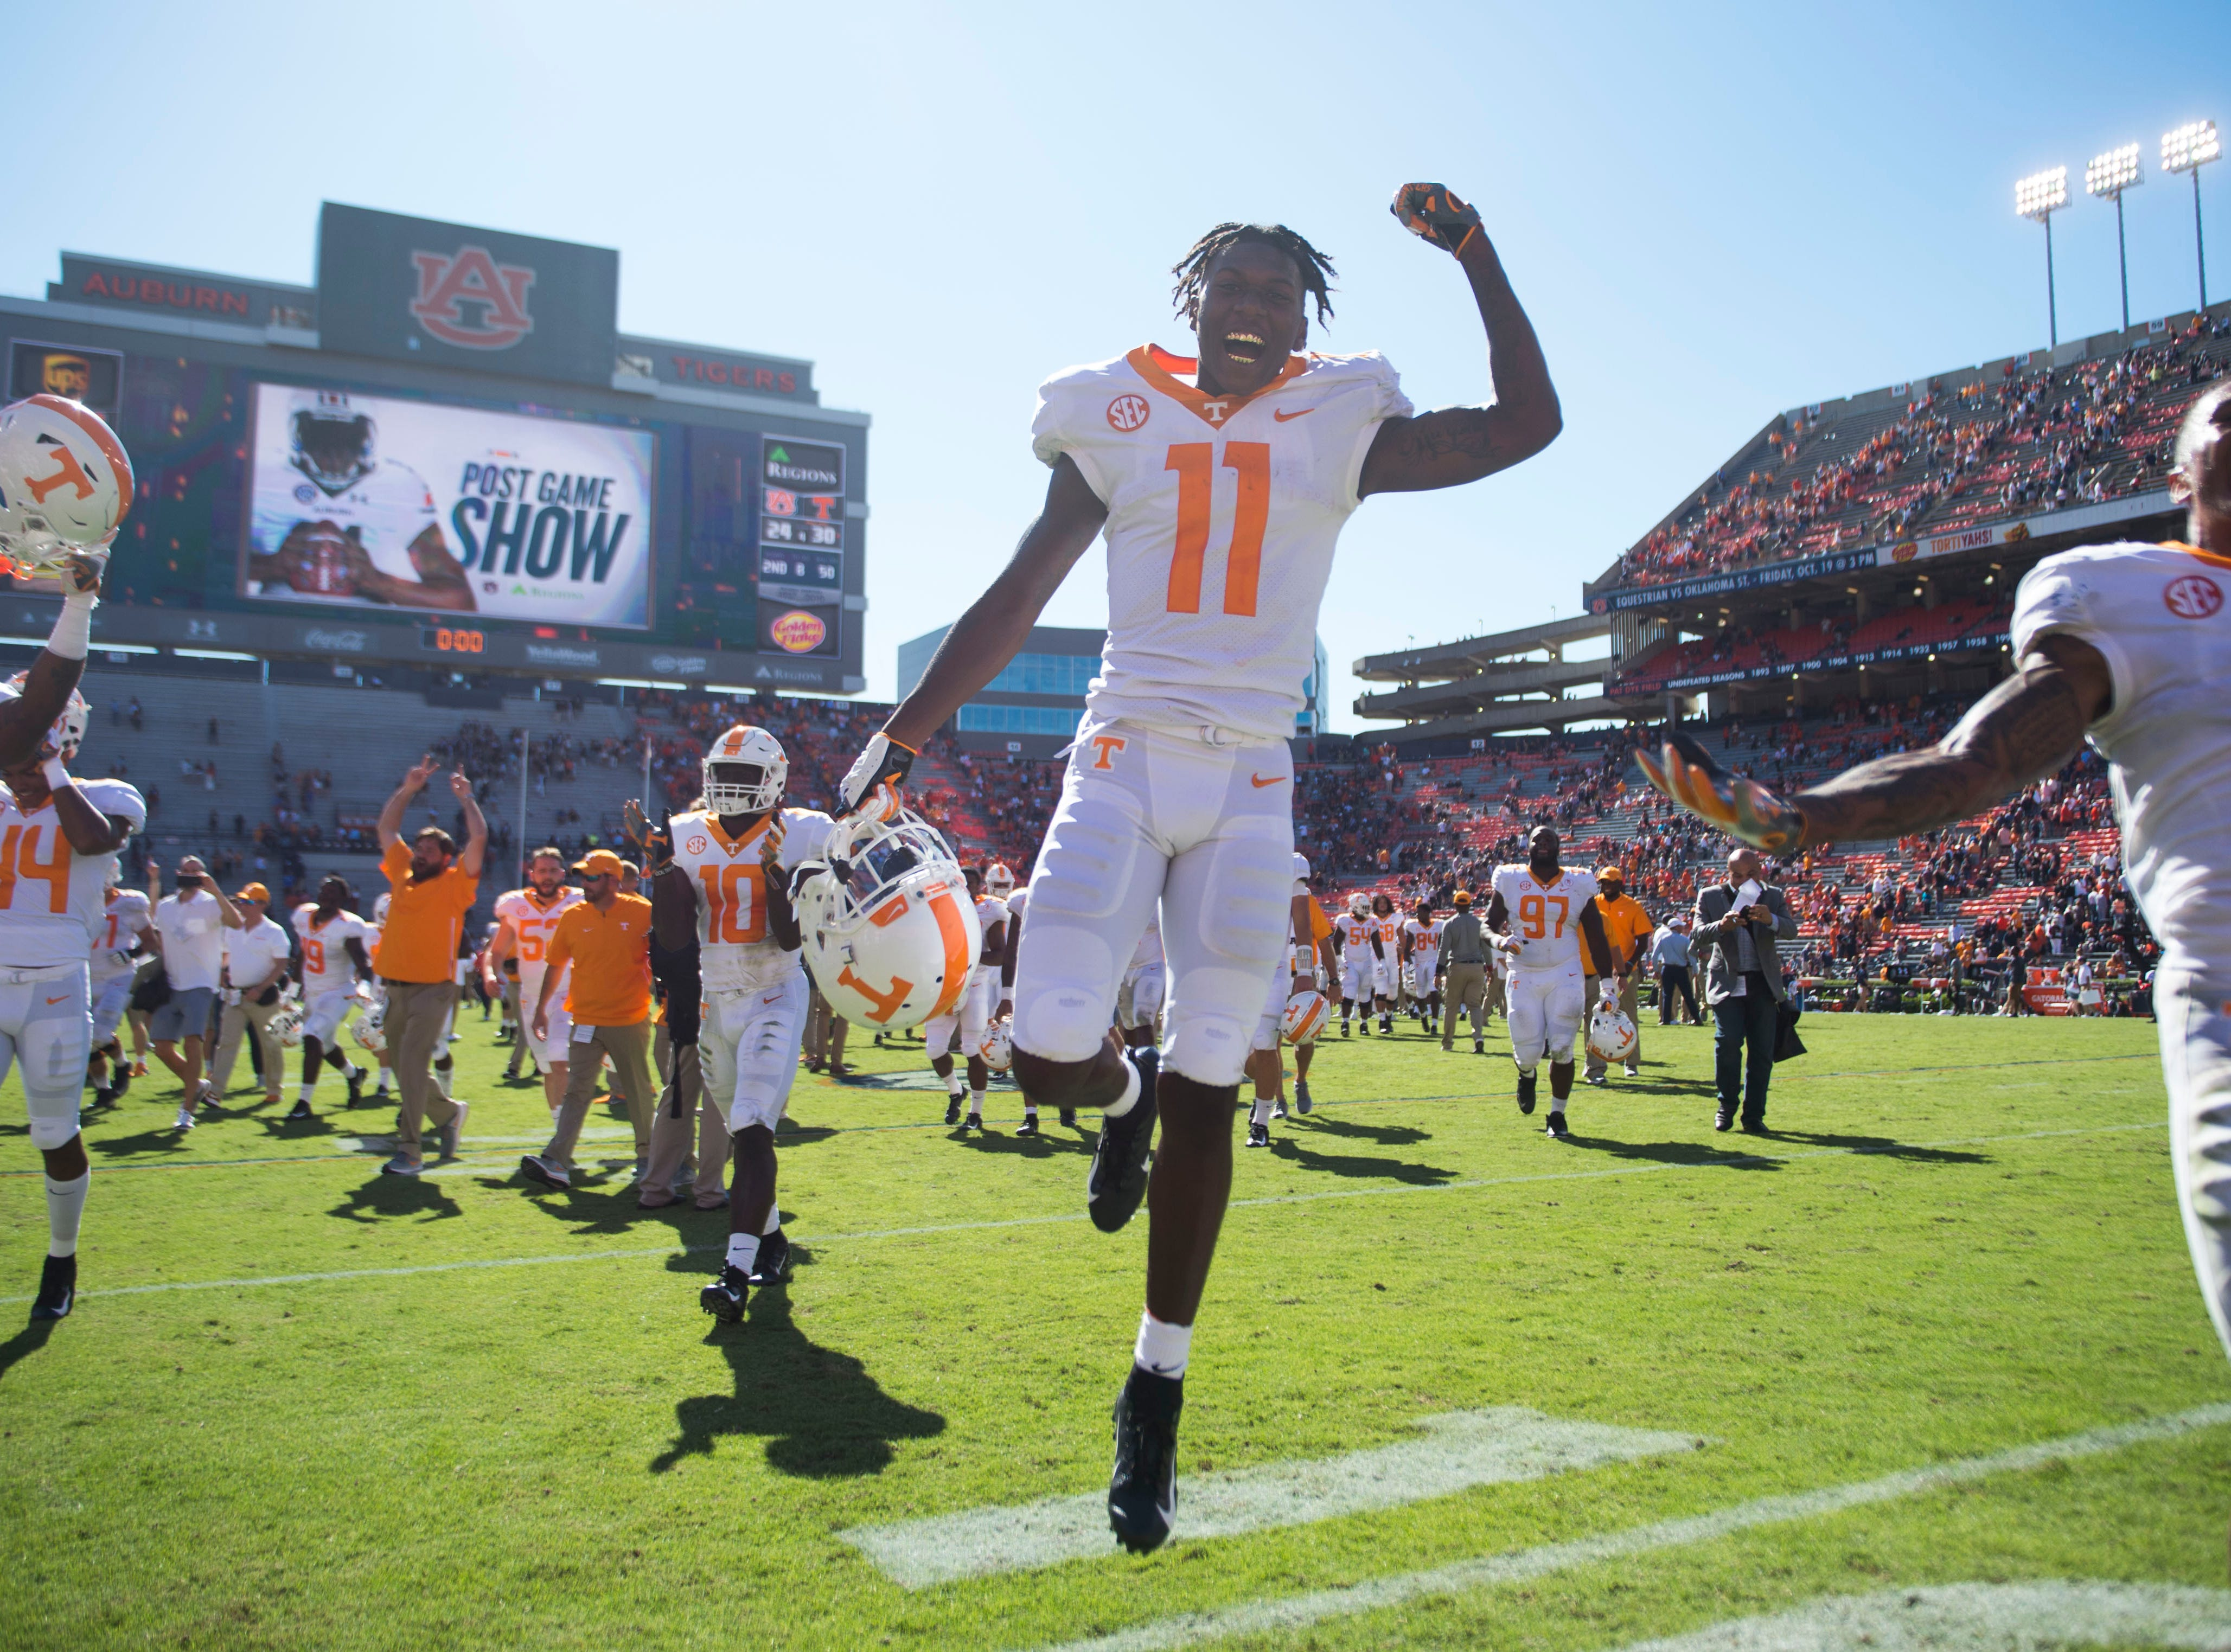 Tennessee wide receiver Jordan Murphy (11) runs off the field after a game between Tennessee and Auburn at Jordan-Hare Stadium in Auburn, Ala. Saturday, Oct. 13, 2018. Tennessee defeated Auburn 30-24.